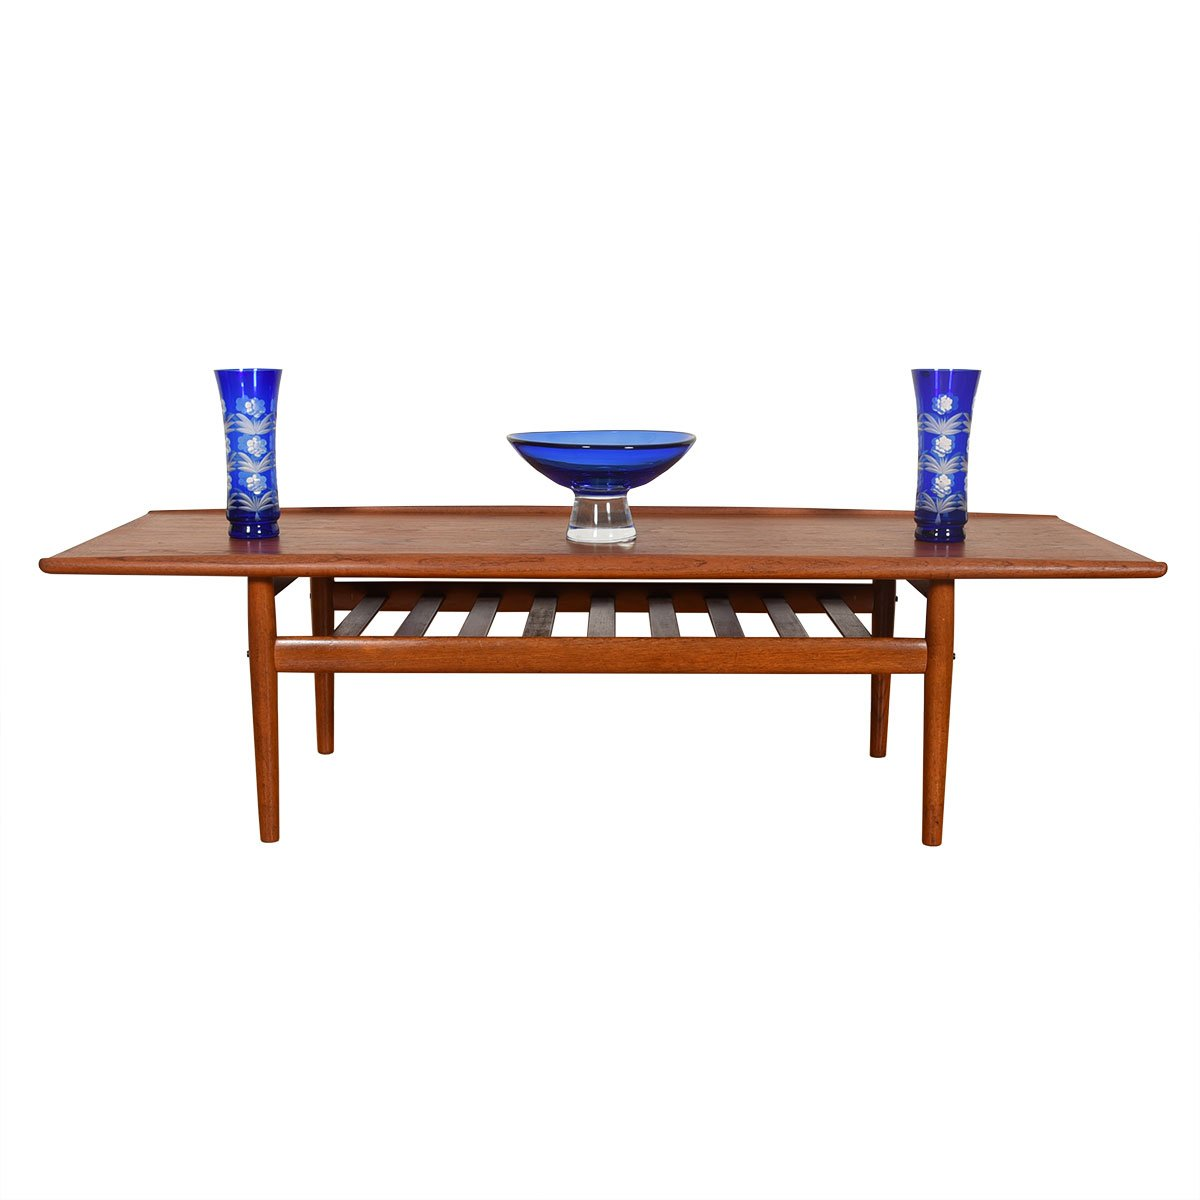 Grete Jalk Danish Teak Surfboard Coffee Table w/ Shelf